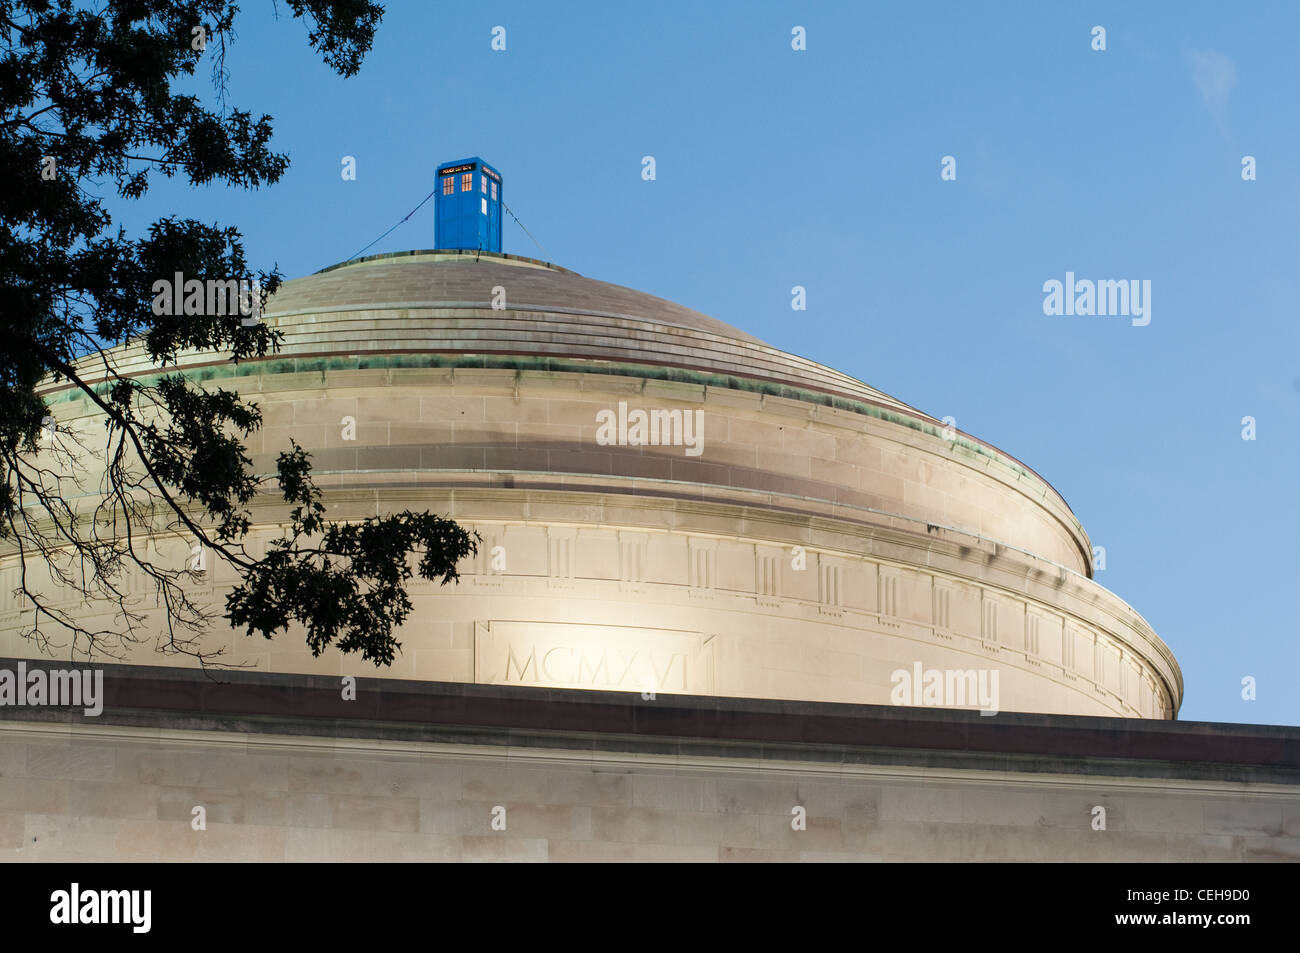 On 8/30/10, an illuminated 'Doctor Who'-style police call box ('TARDIS') appeared on MIT's Great - Stock Image